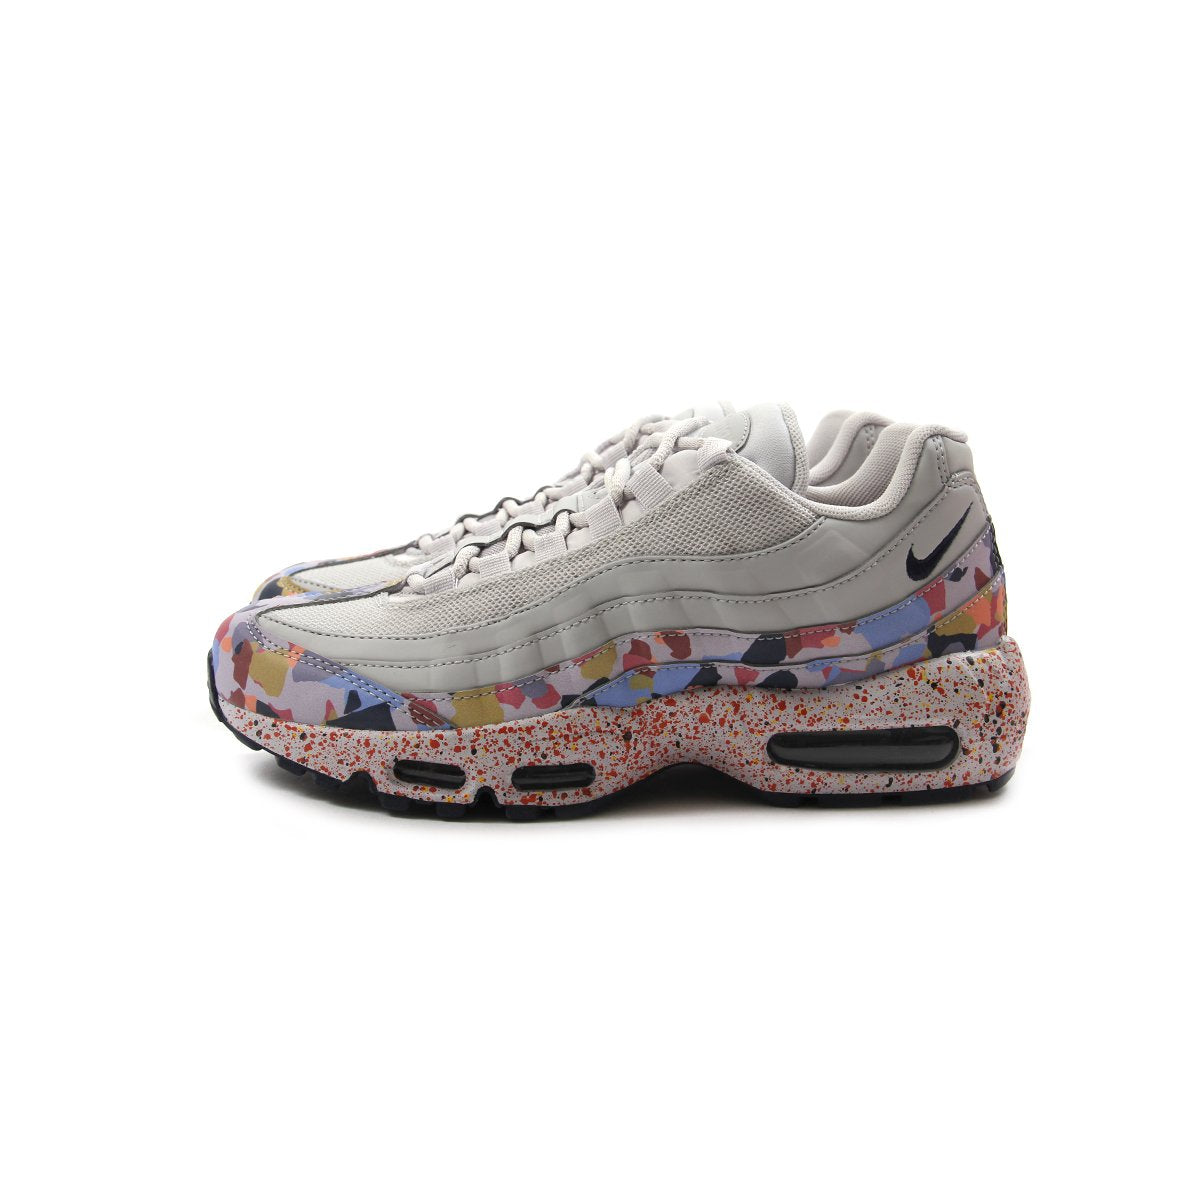 b20f9a4dba ConceptsIntl | Nike Womens Air Max 95 SE (Vast Grey/Midnight Navy-Habanero  Red)